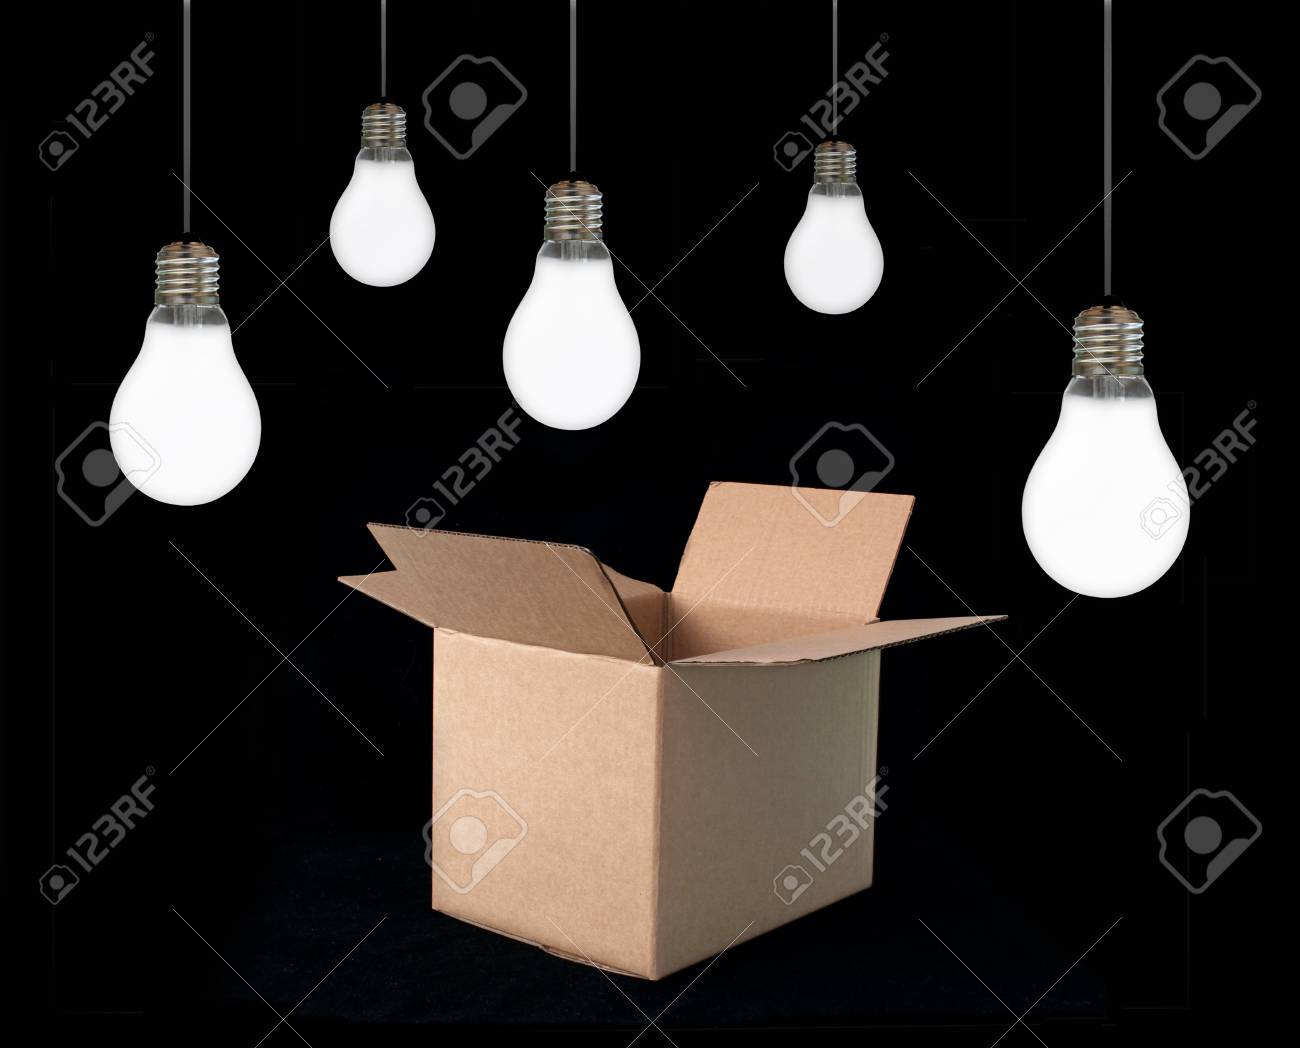 Thinking out of the box Stock Photo - 16720378